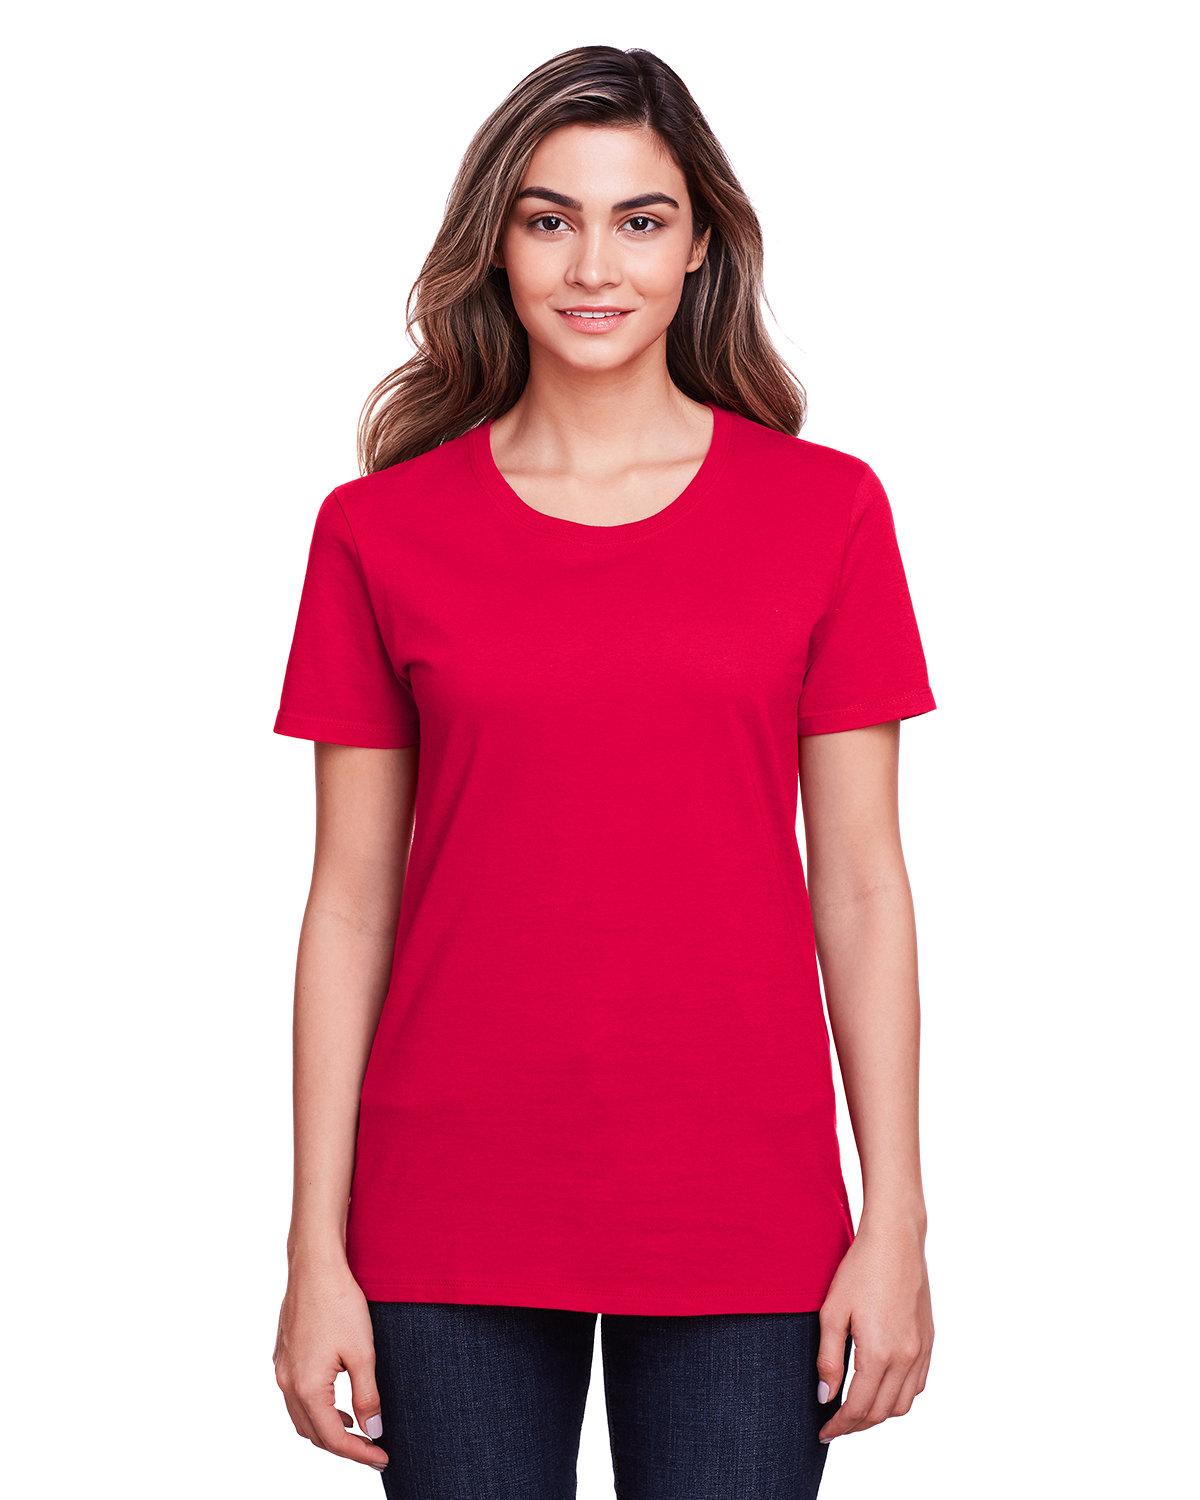 Fruit of the Loom Ladies' ICONIC™ T-Shirt TRUE RED